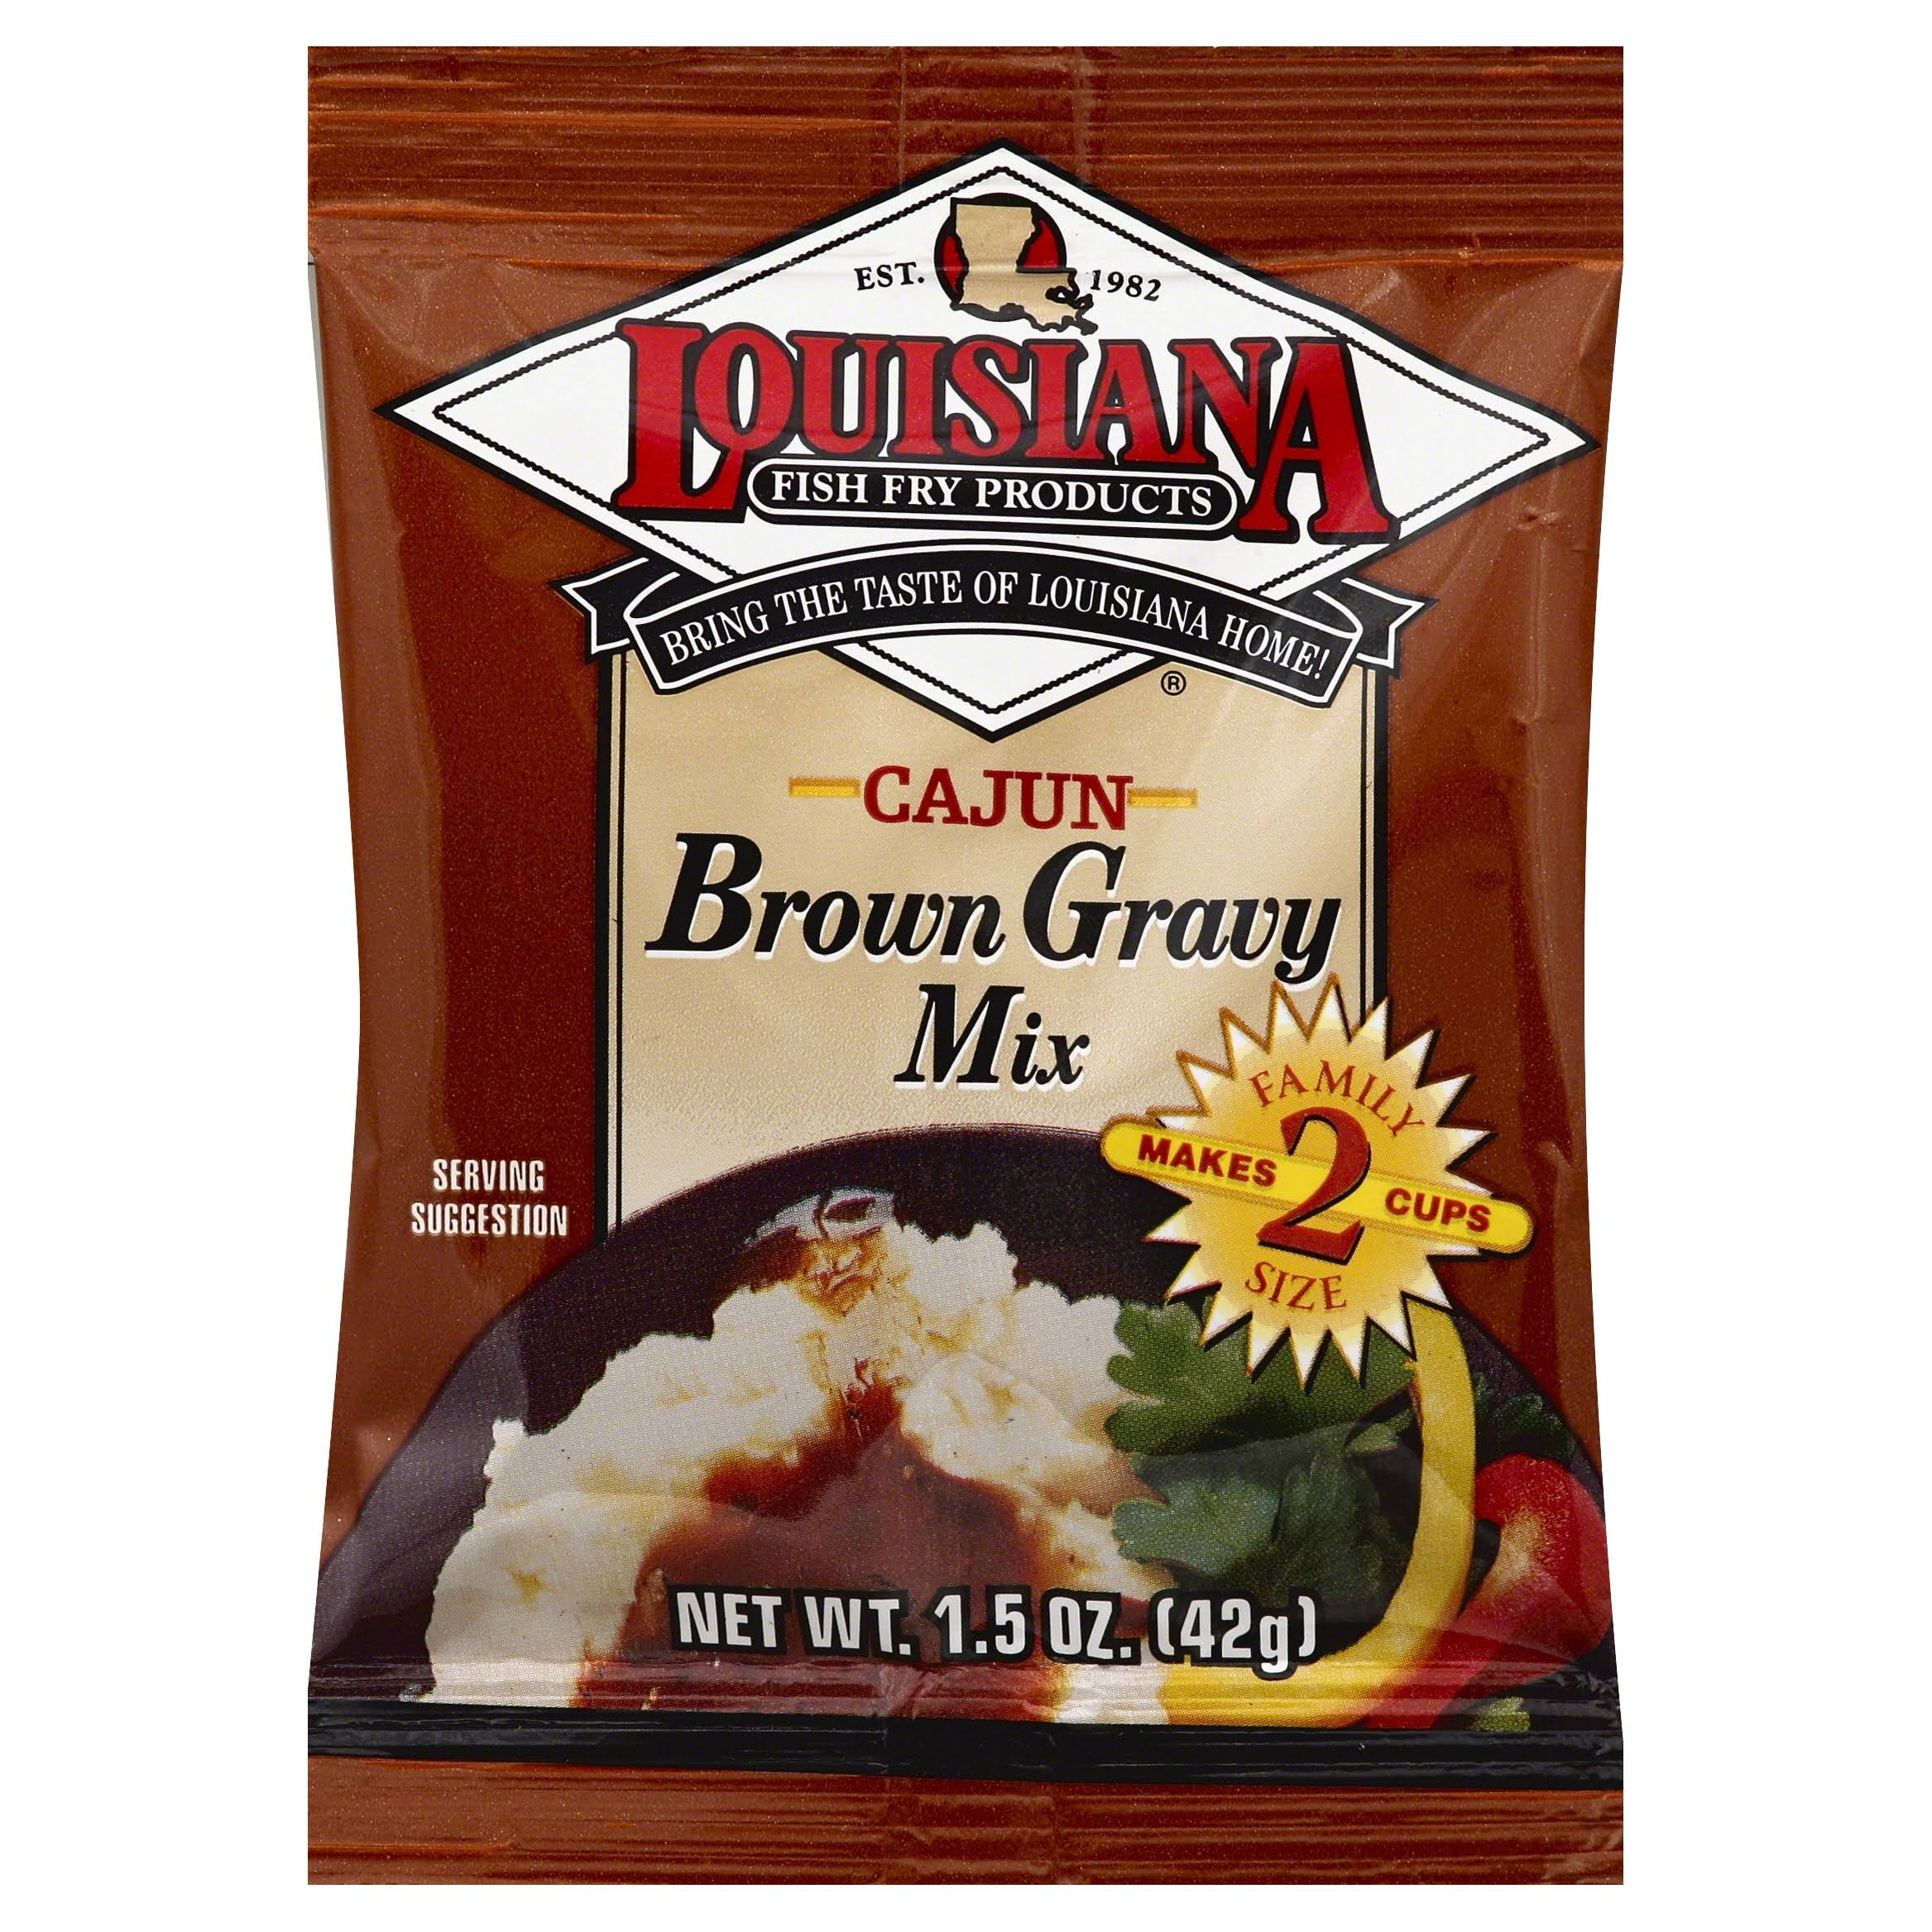 Louisiana Fish Fry Cajun Brown Gravy Mix - 1.5oz